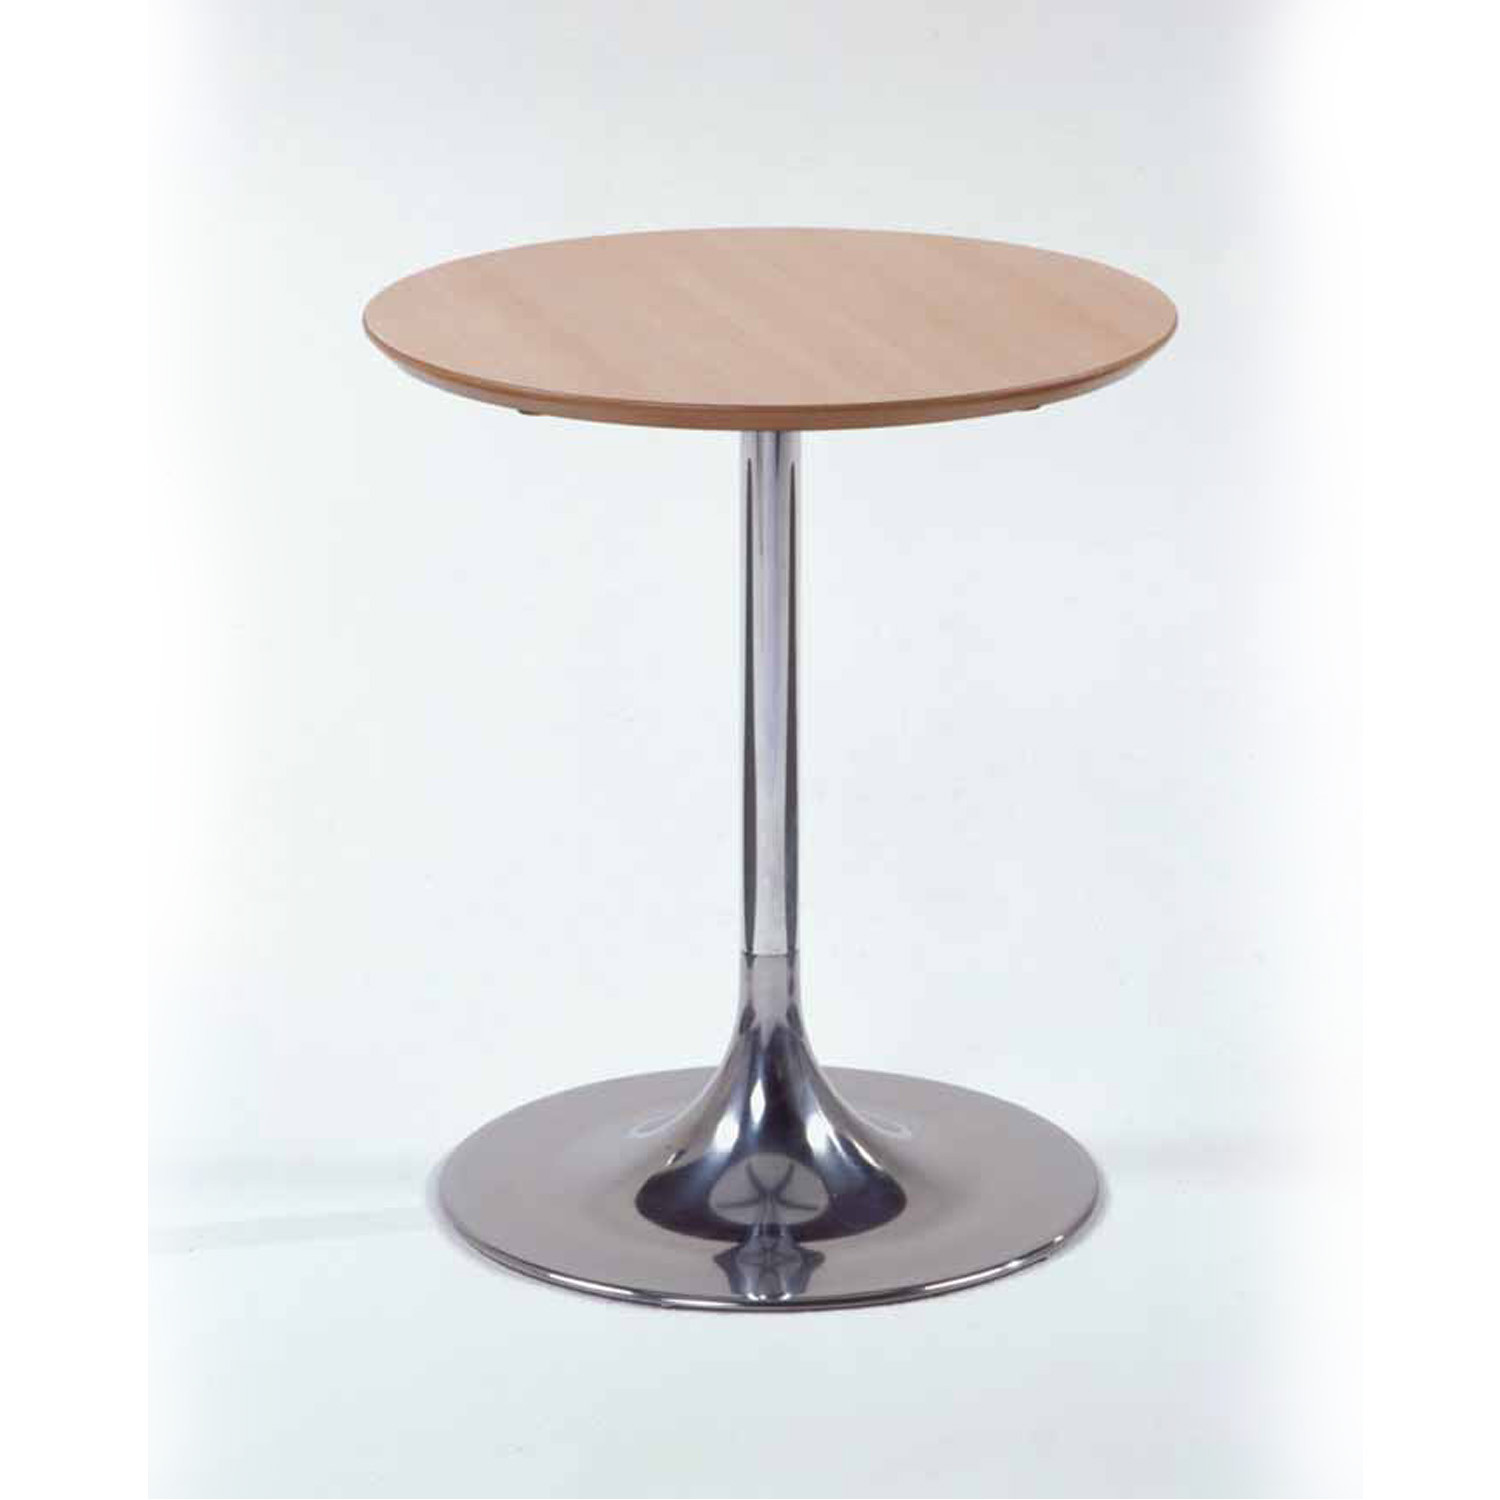 Platto Circular Table